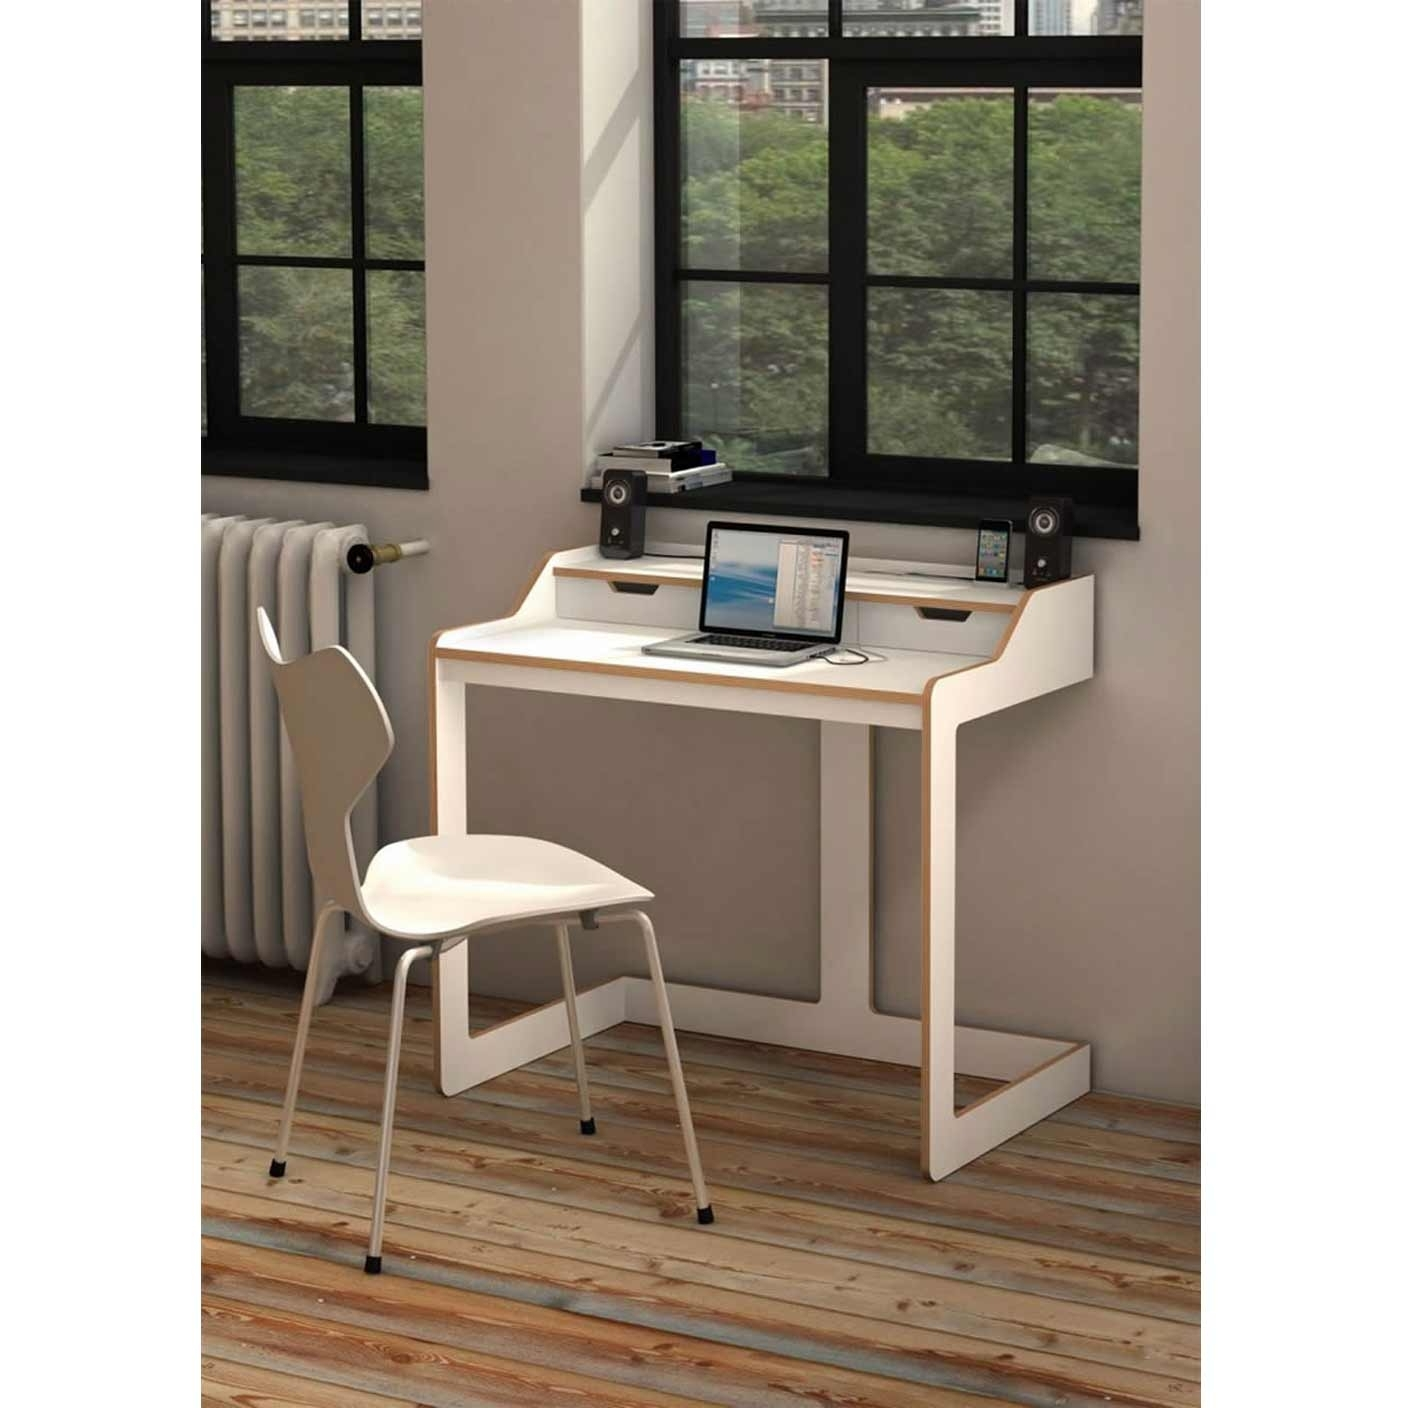 Most Recent Computer Desks For Very Small Spaces Intended For Captivating Laptop Computer Desks For Small Spaces Images (View 5 of 20)